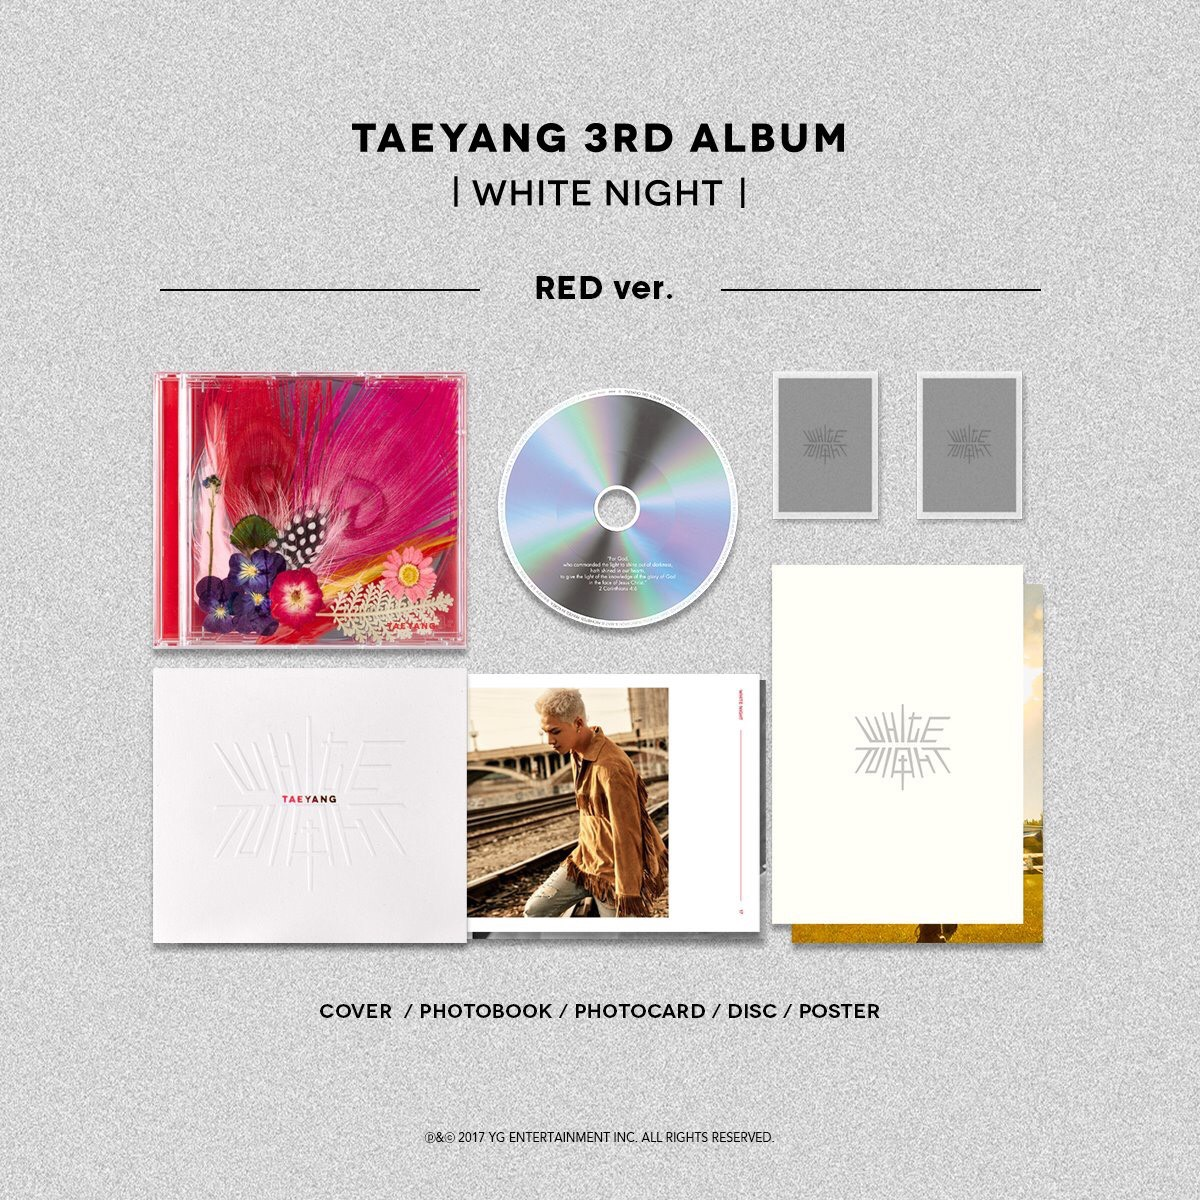 อัลบั้ม #TAEYANG - TAEYANG 3RD ALBUM [RED NIGHT] : RED VER.